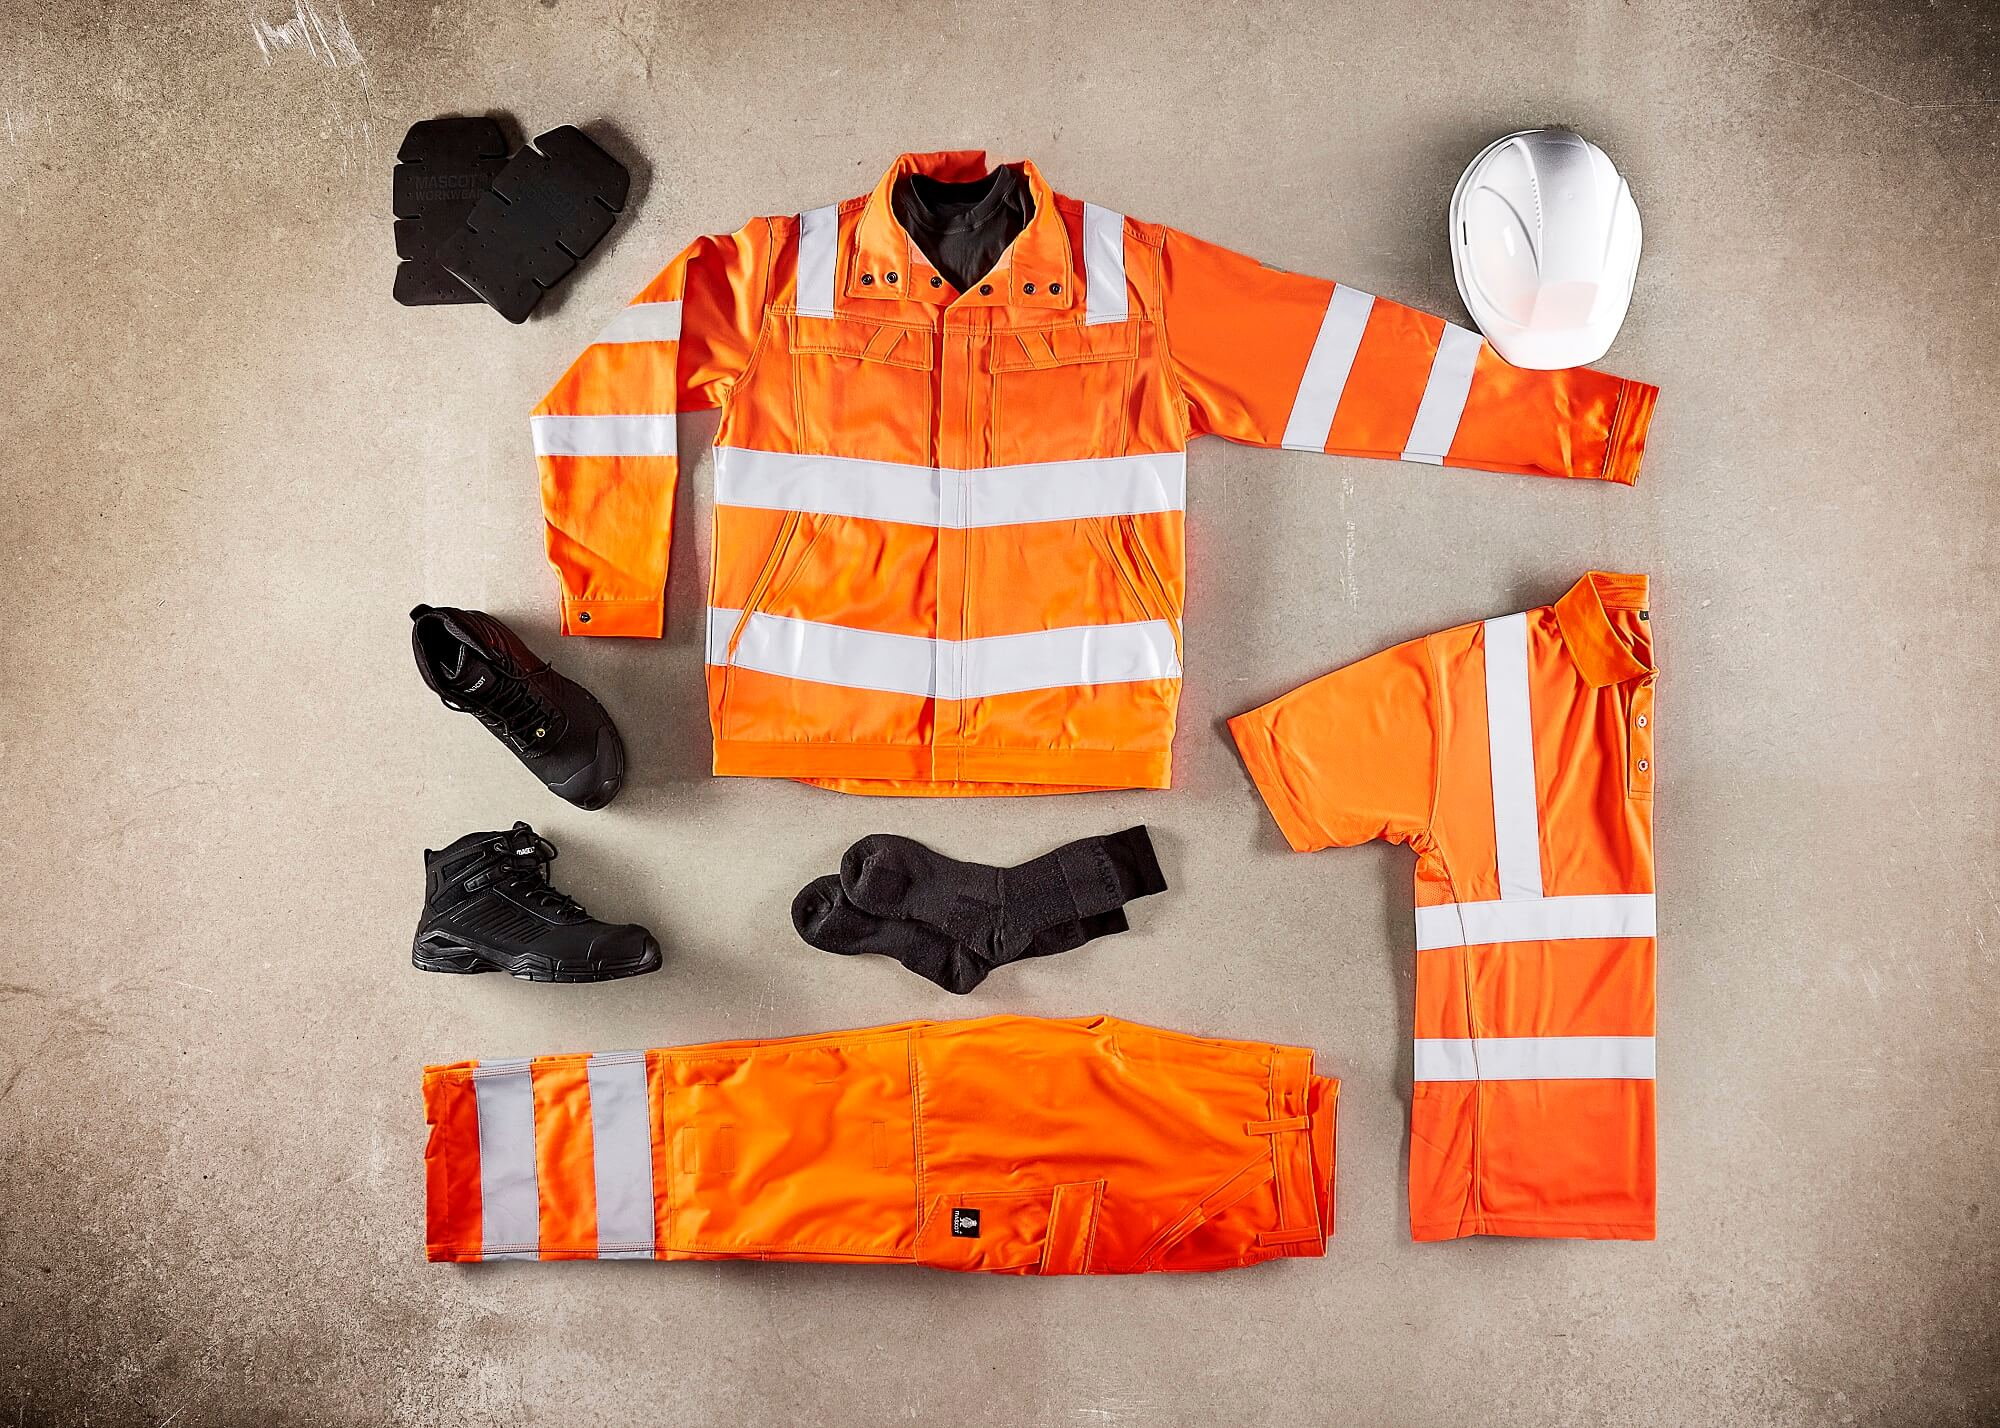 Fluorescent orange - Workwear - Collage